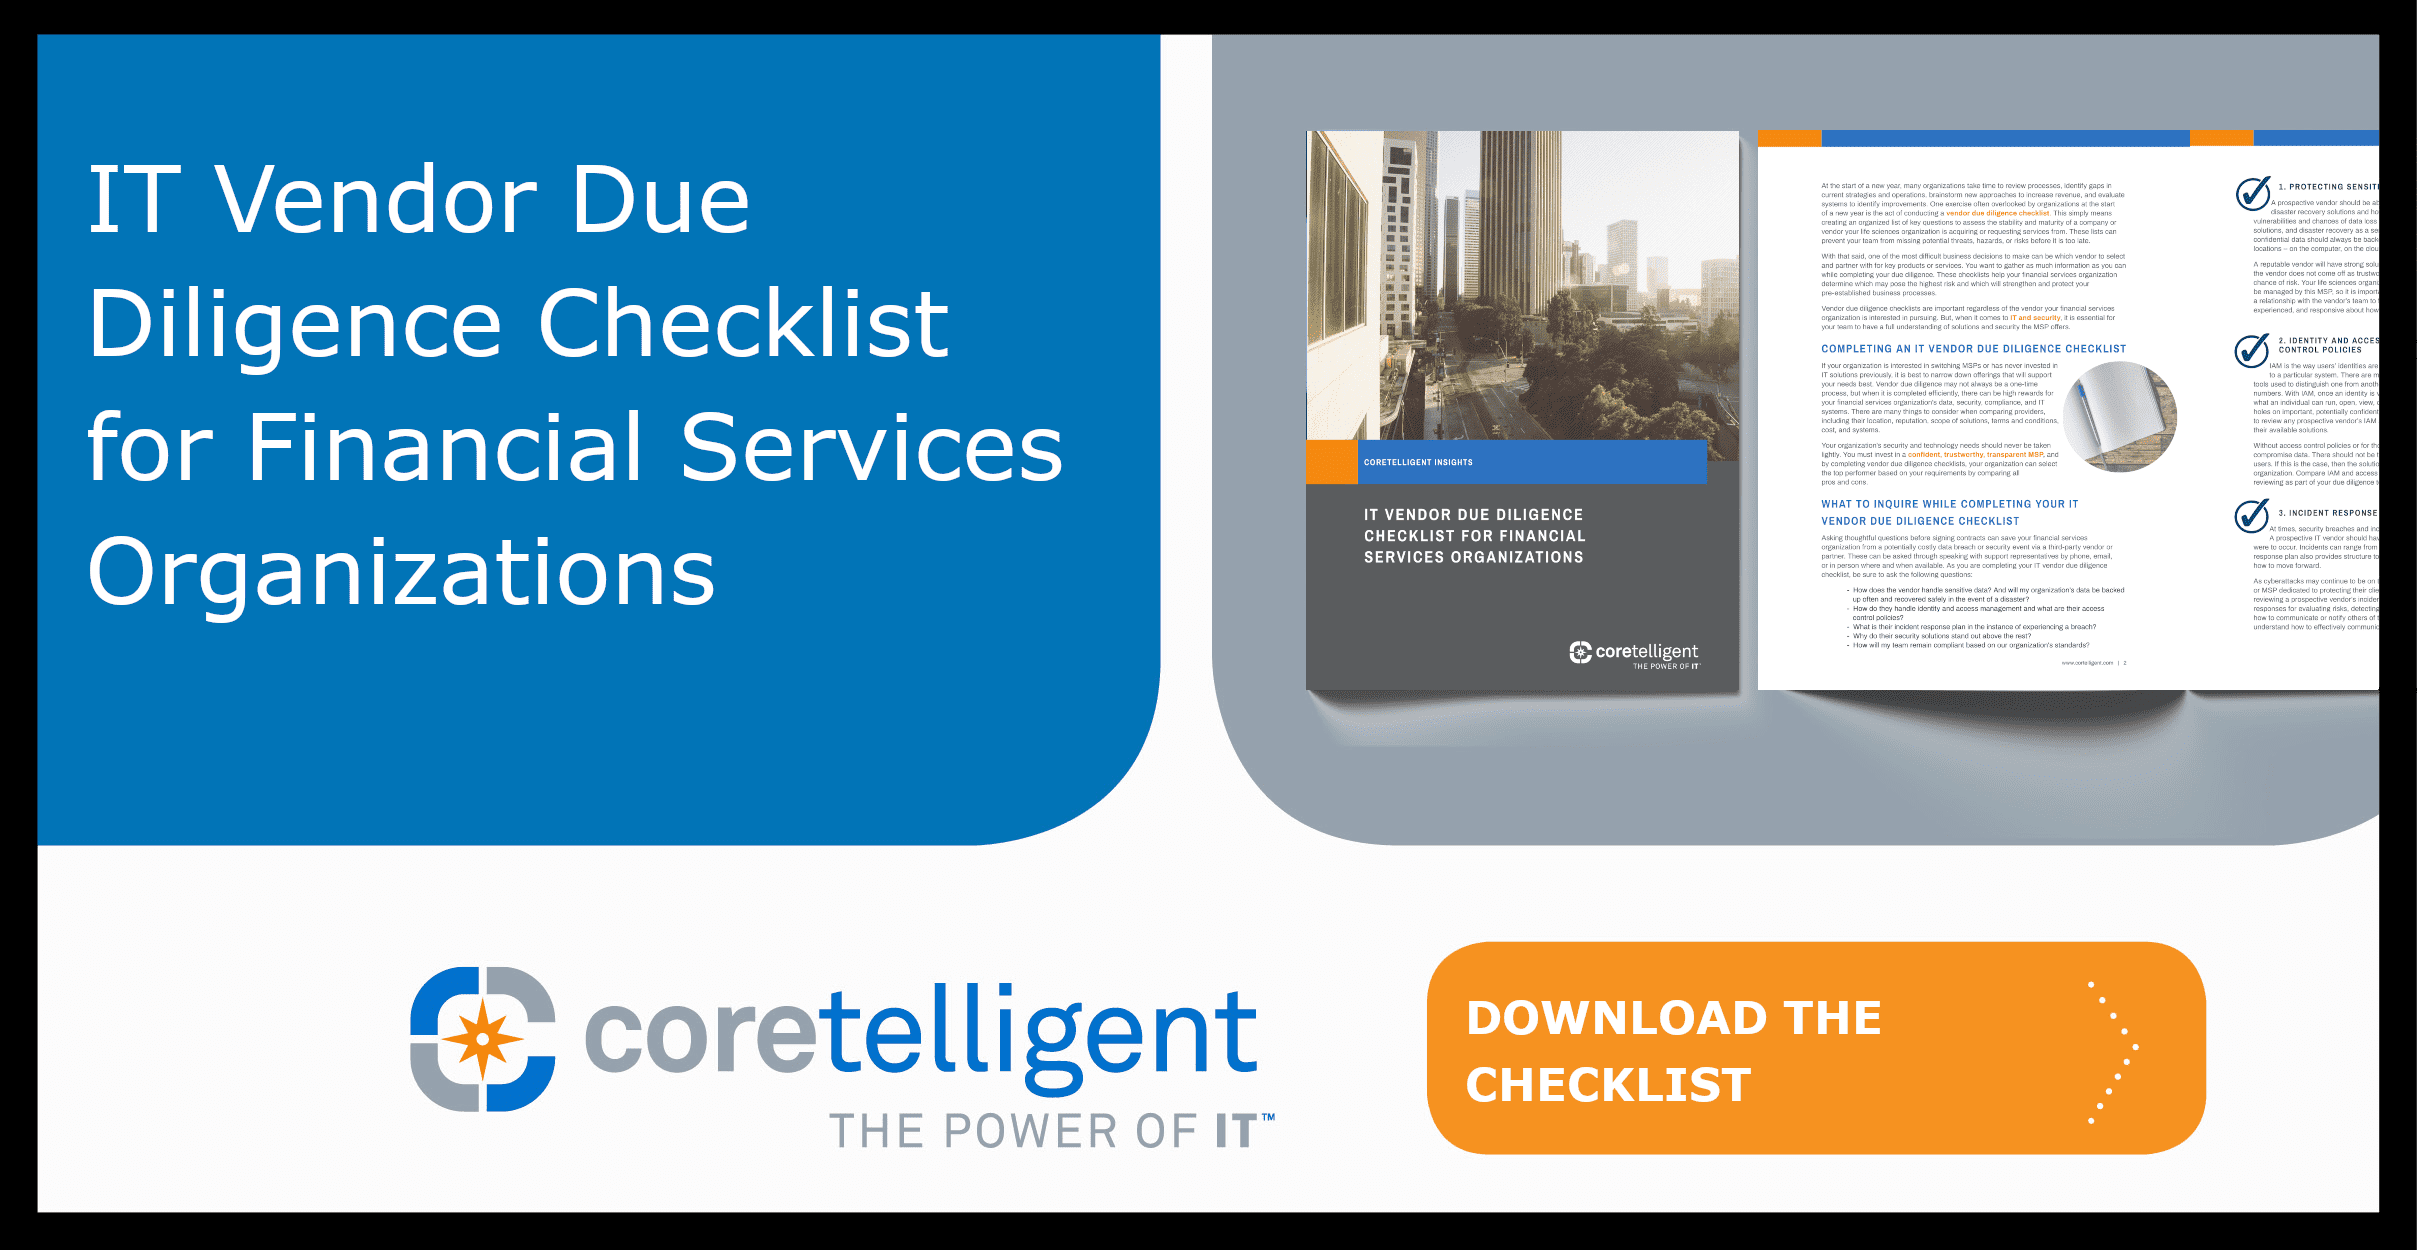 IT Vendor Due Diligence Checklist for Financial Services Organizations